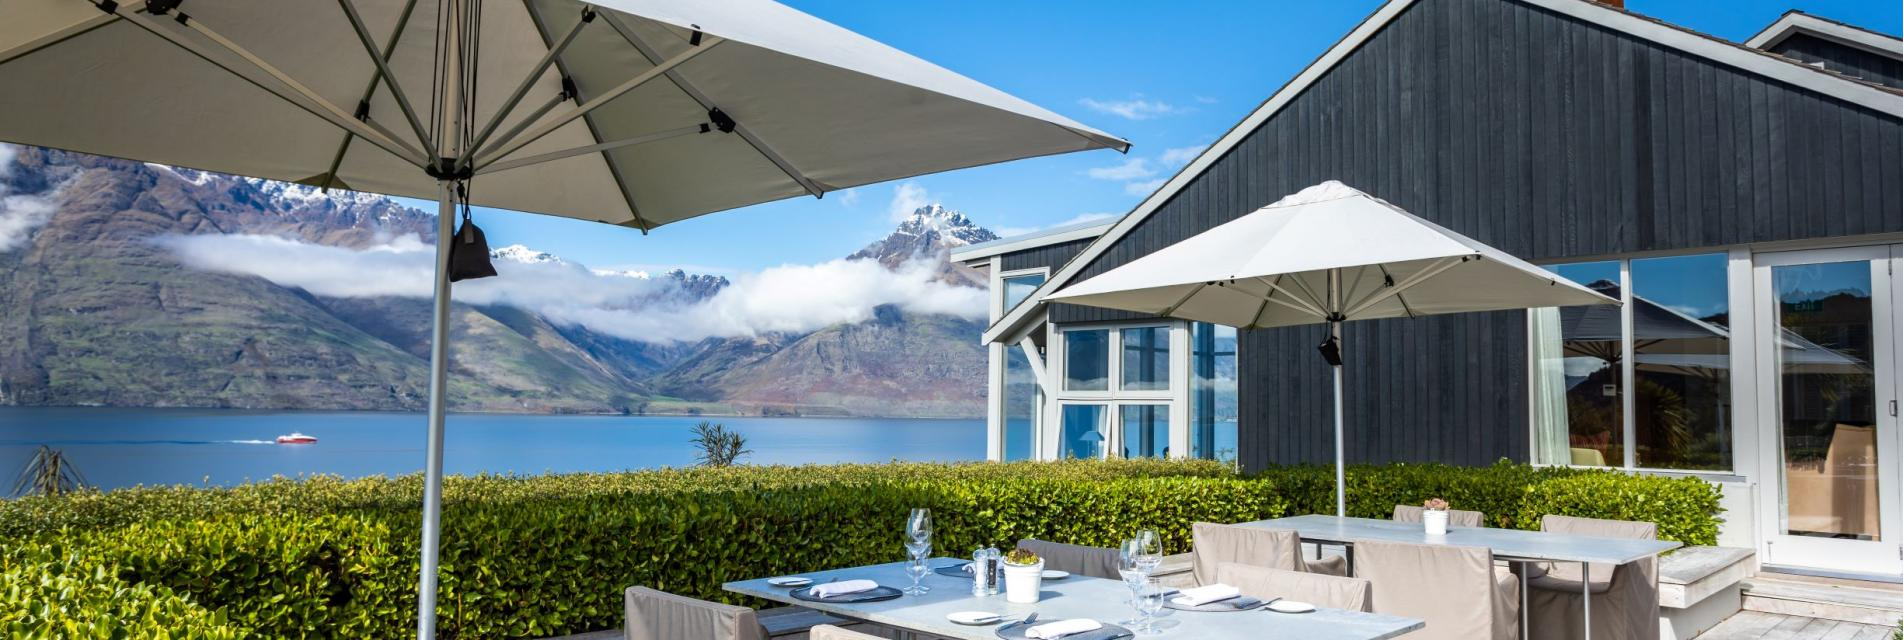 Matakauri Lodge Remarkables Terrace banner resize